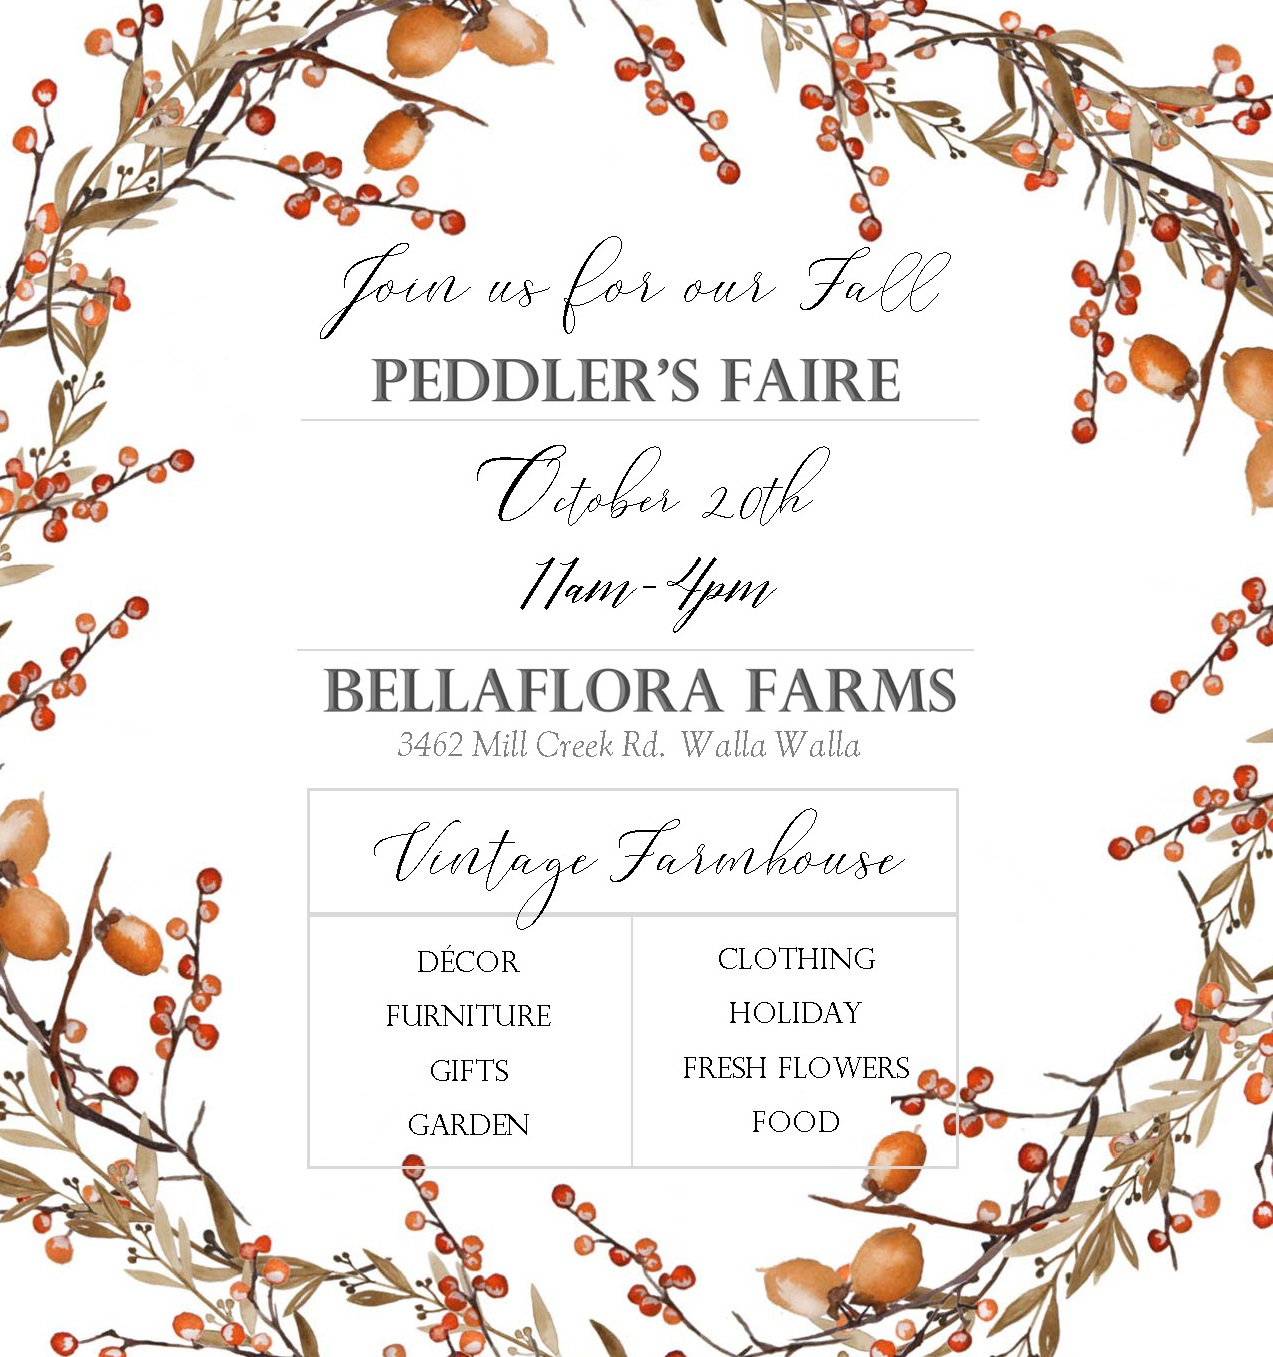 Peddler's Faire Invite.jpg